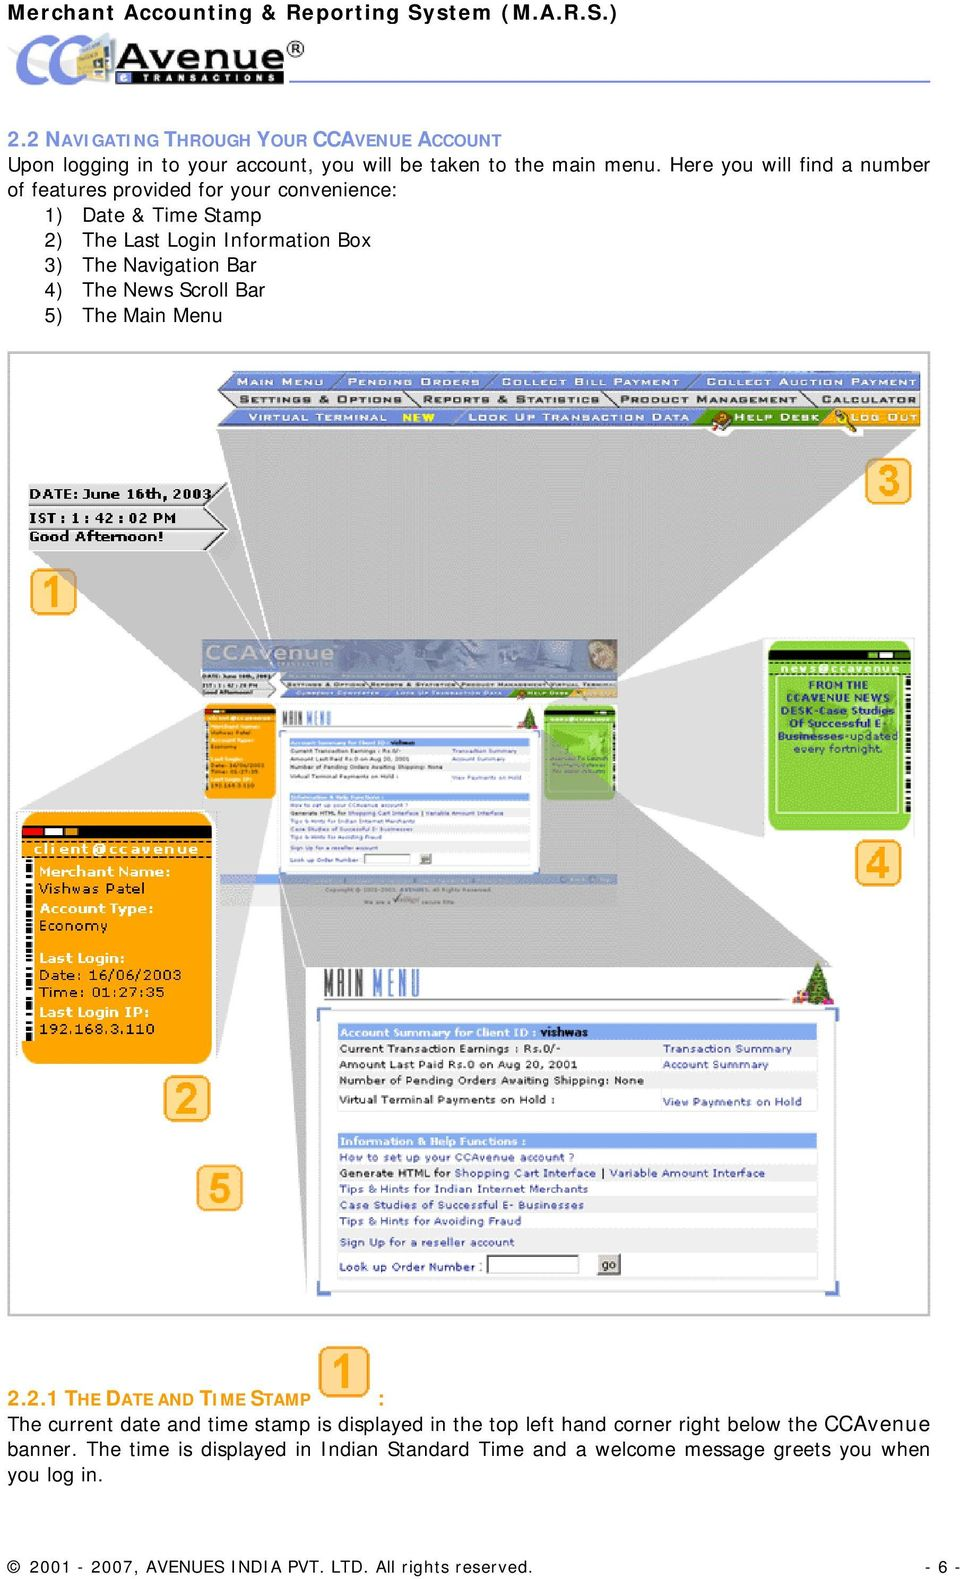 MERCHANT ACCOUNTING & REPORTING SYSTEM (M A R S ) MANUAL